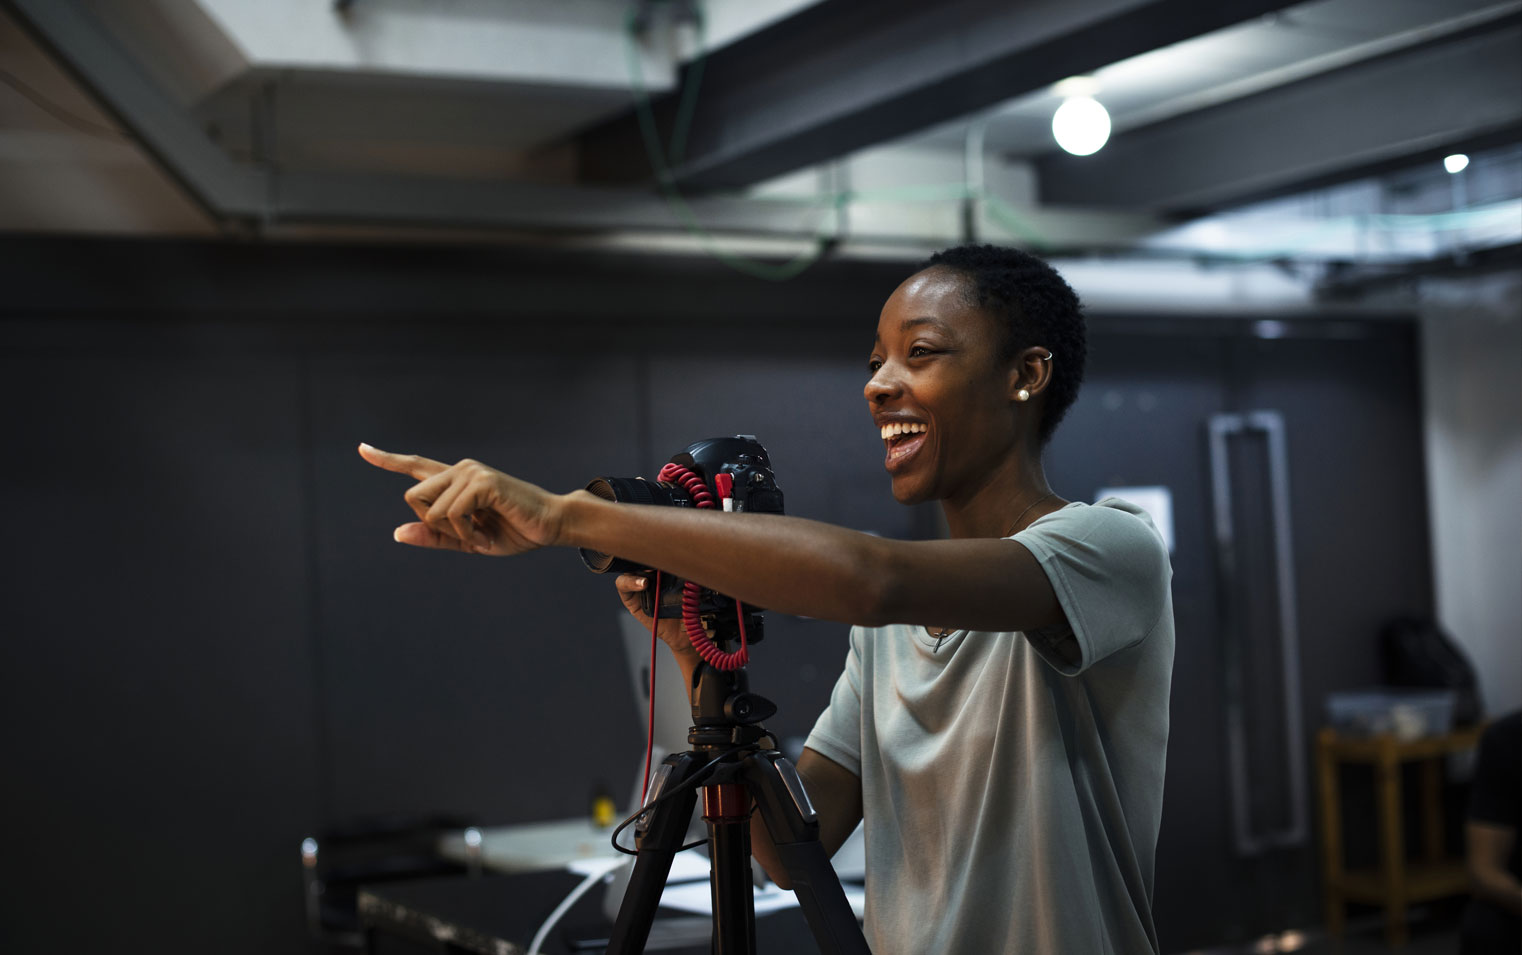 Smiling young African-American stands behind a camera on a tripod.